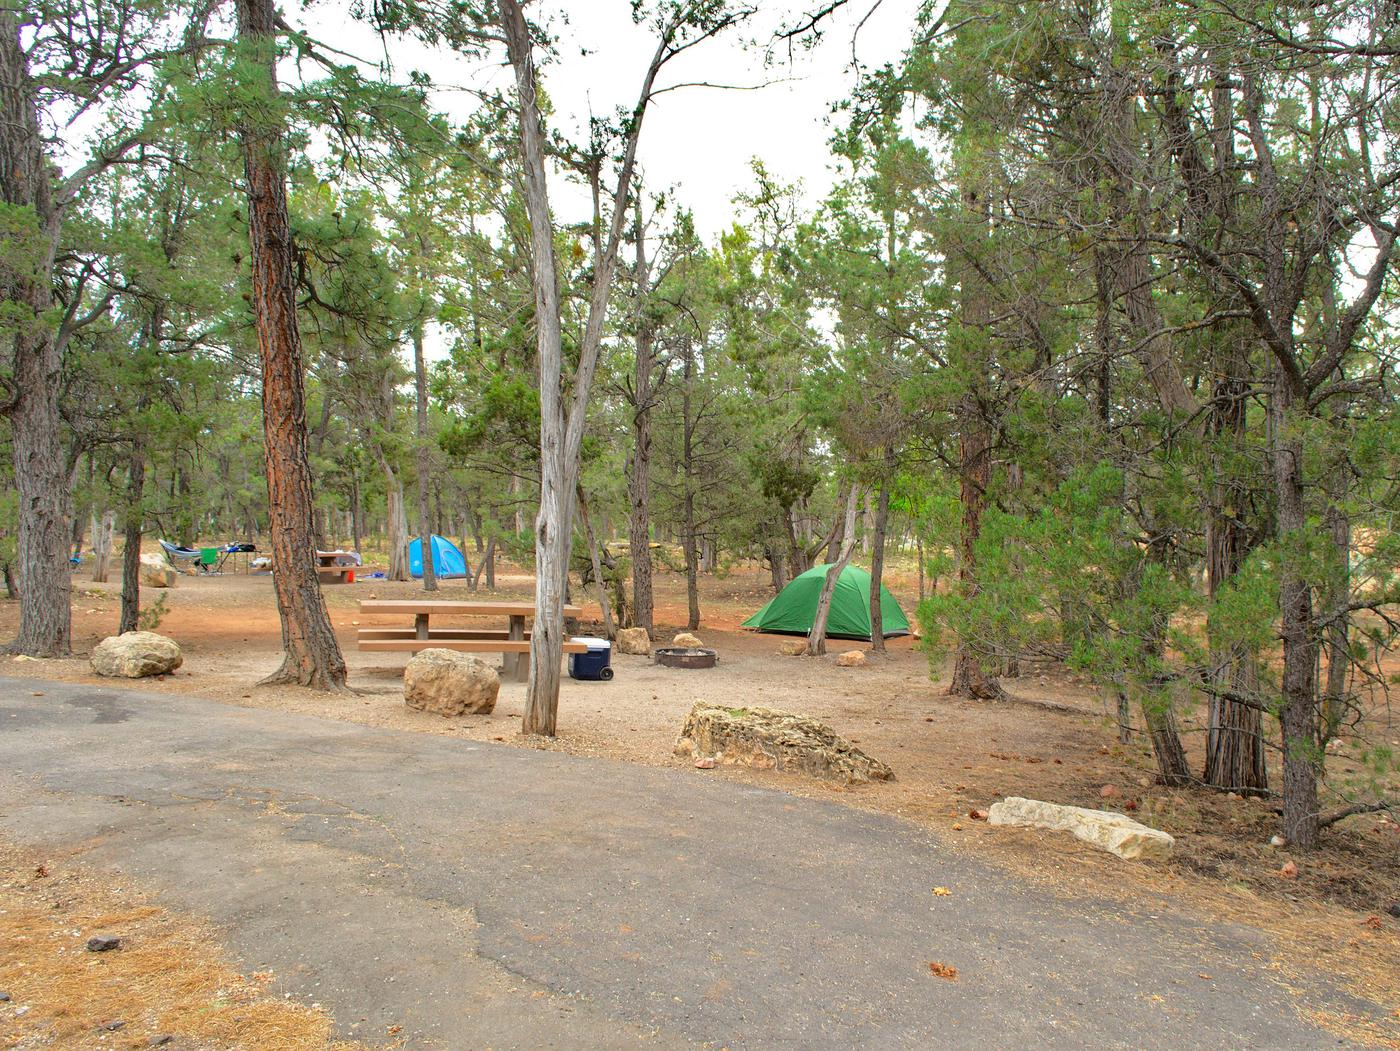 The picnic table, fire pit, tent, and parking spot, Mather CampgroundThe picnic table, fire pit, tent, and parking spot for Aspen Loop 40, Mather Campground